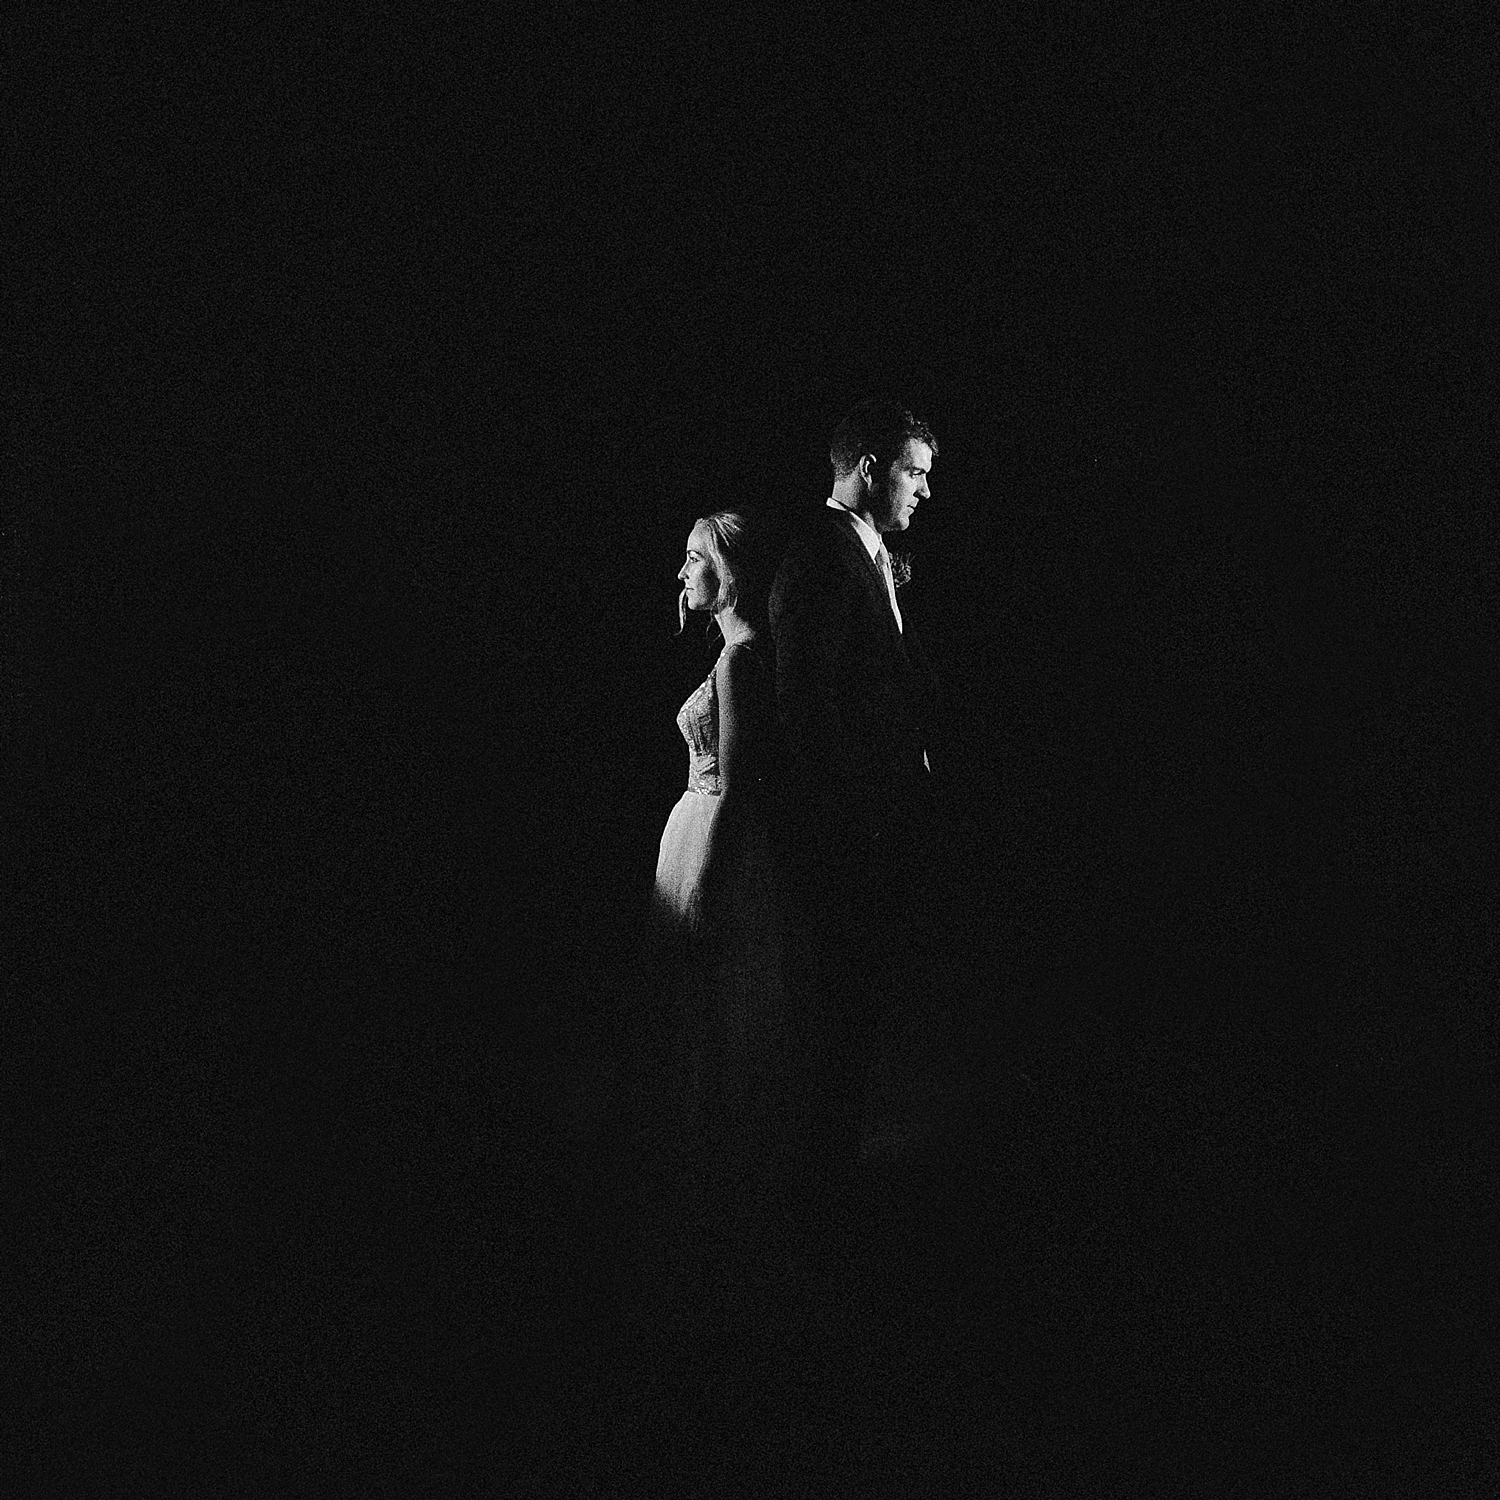 bride and groom standing back to back at night